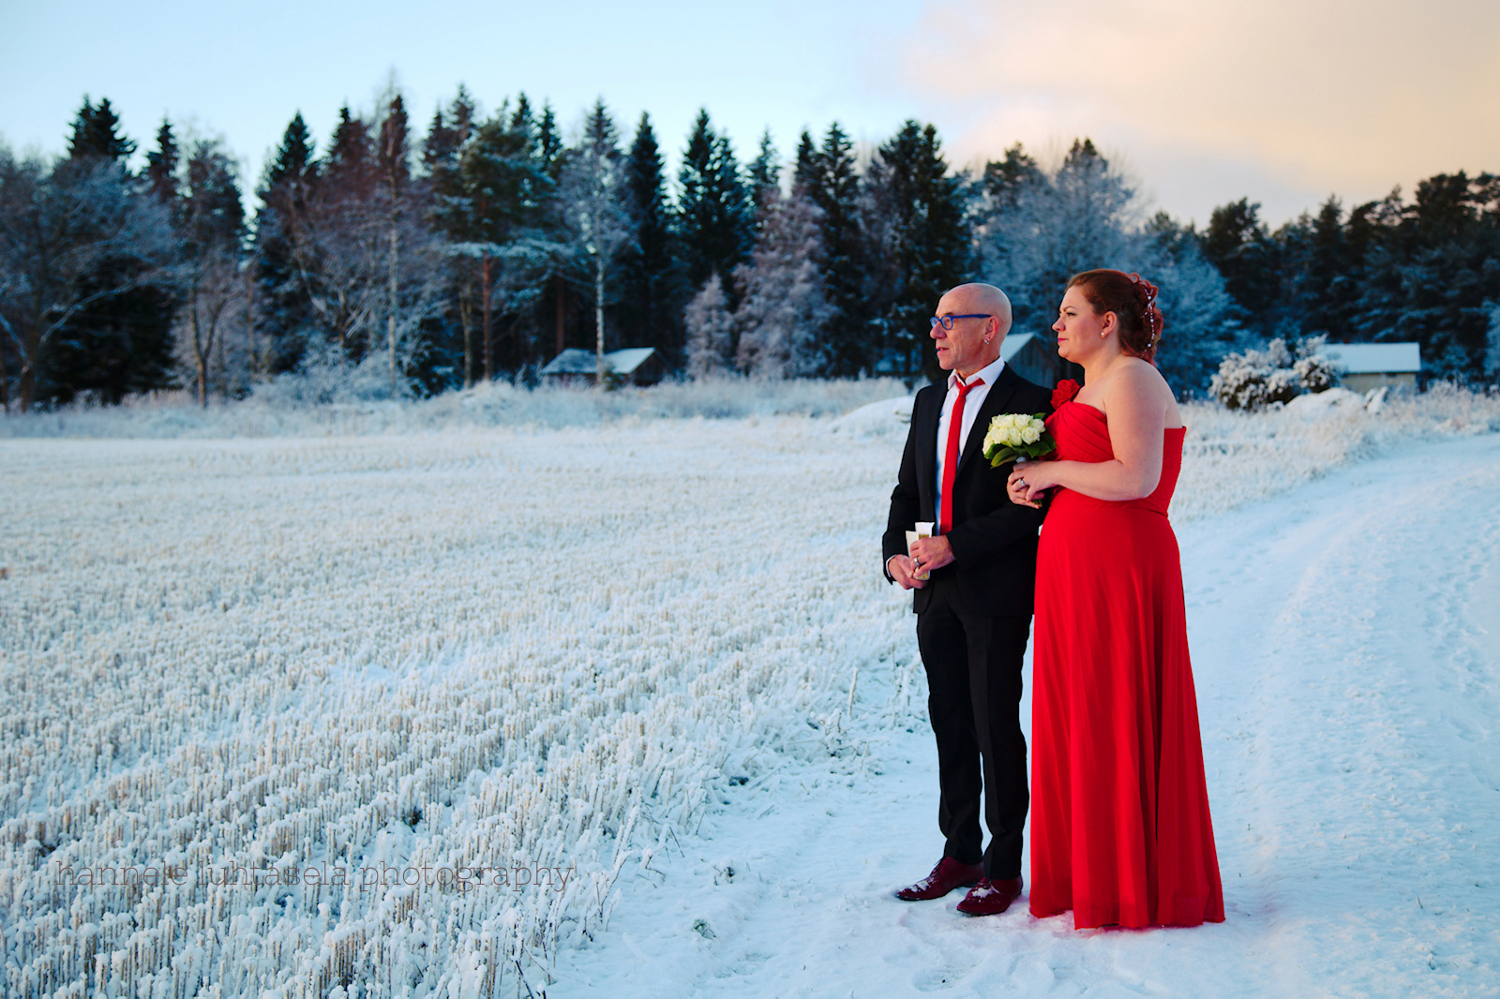 Wedding portrait in winter.